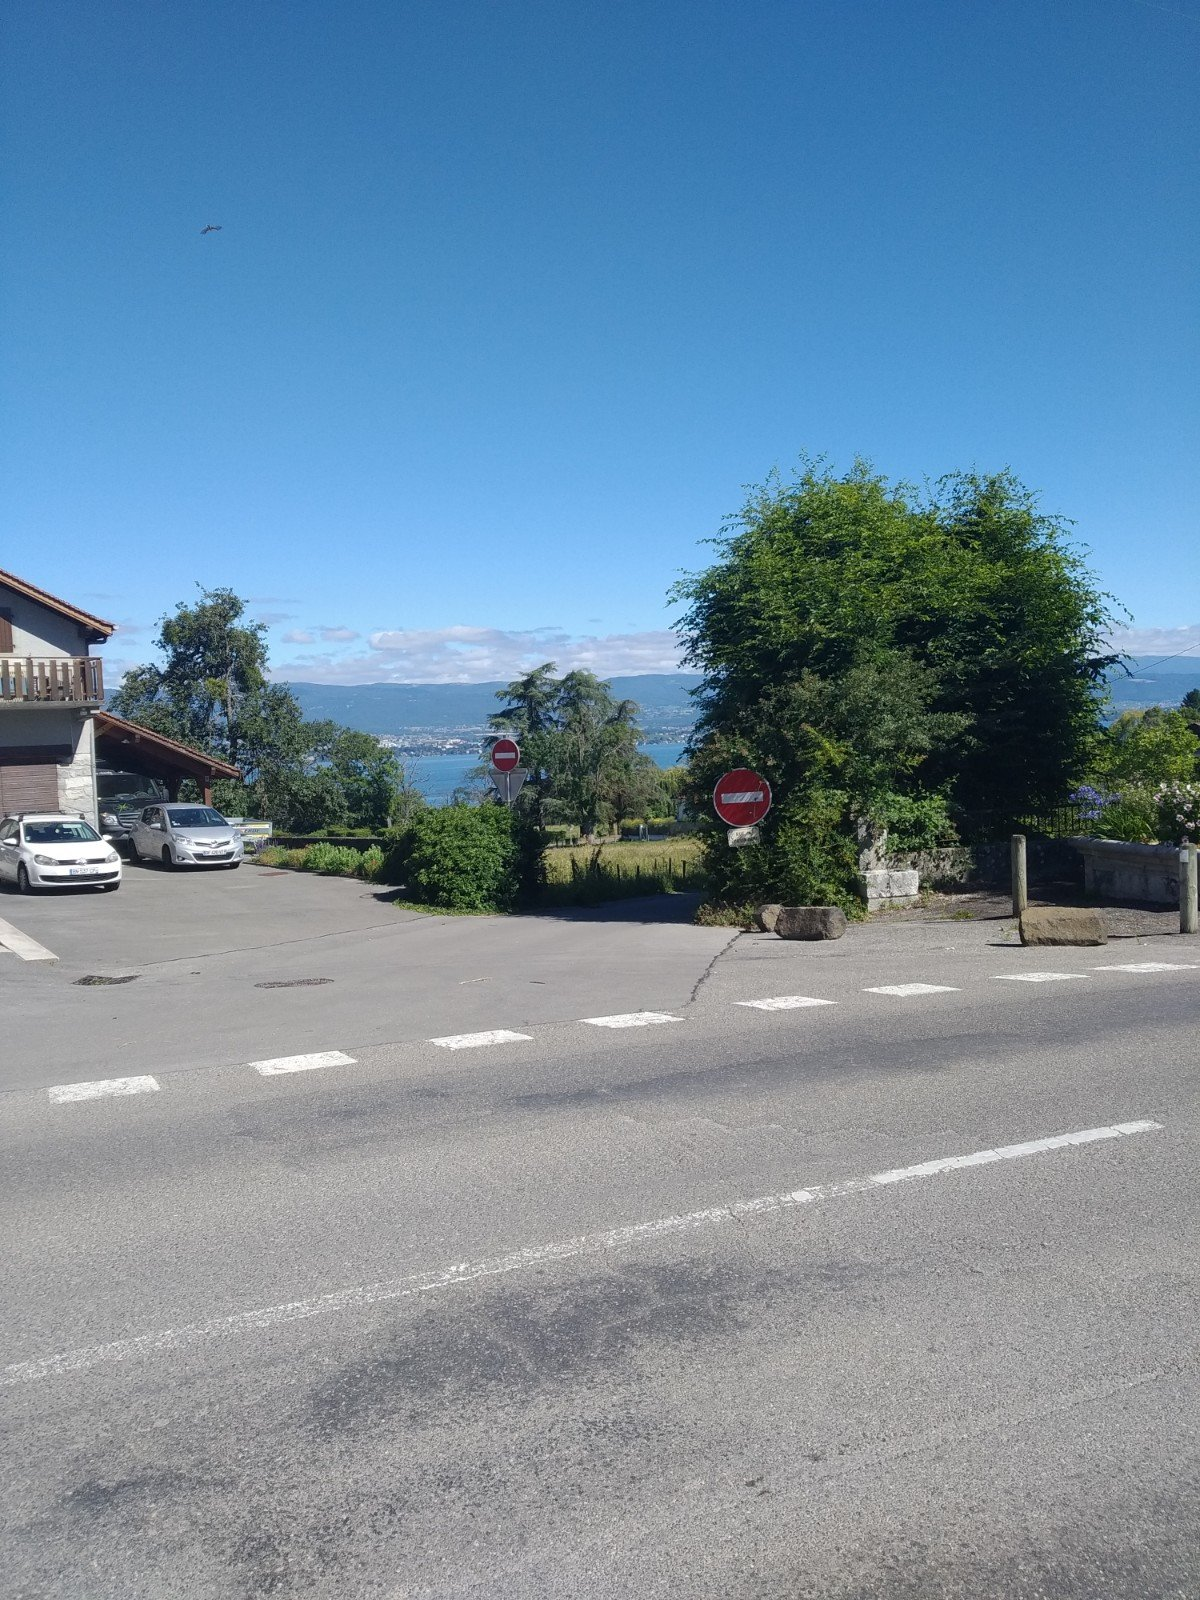 2 BEDROOMS APARTMENT - 20 MINUTES FROM GENEVA